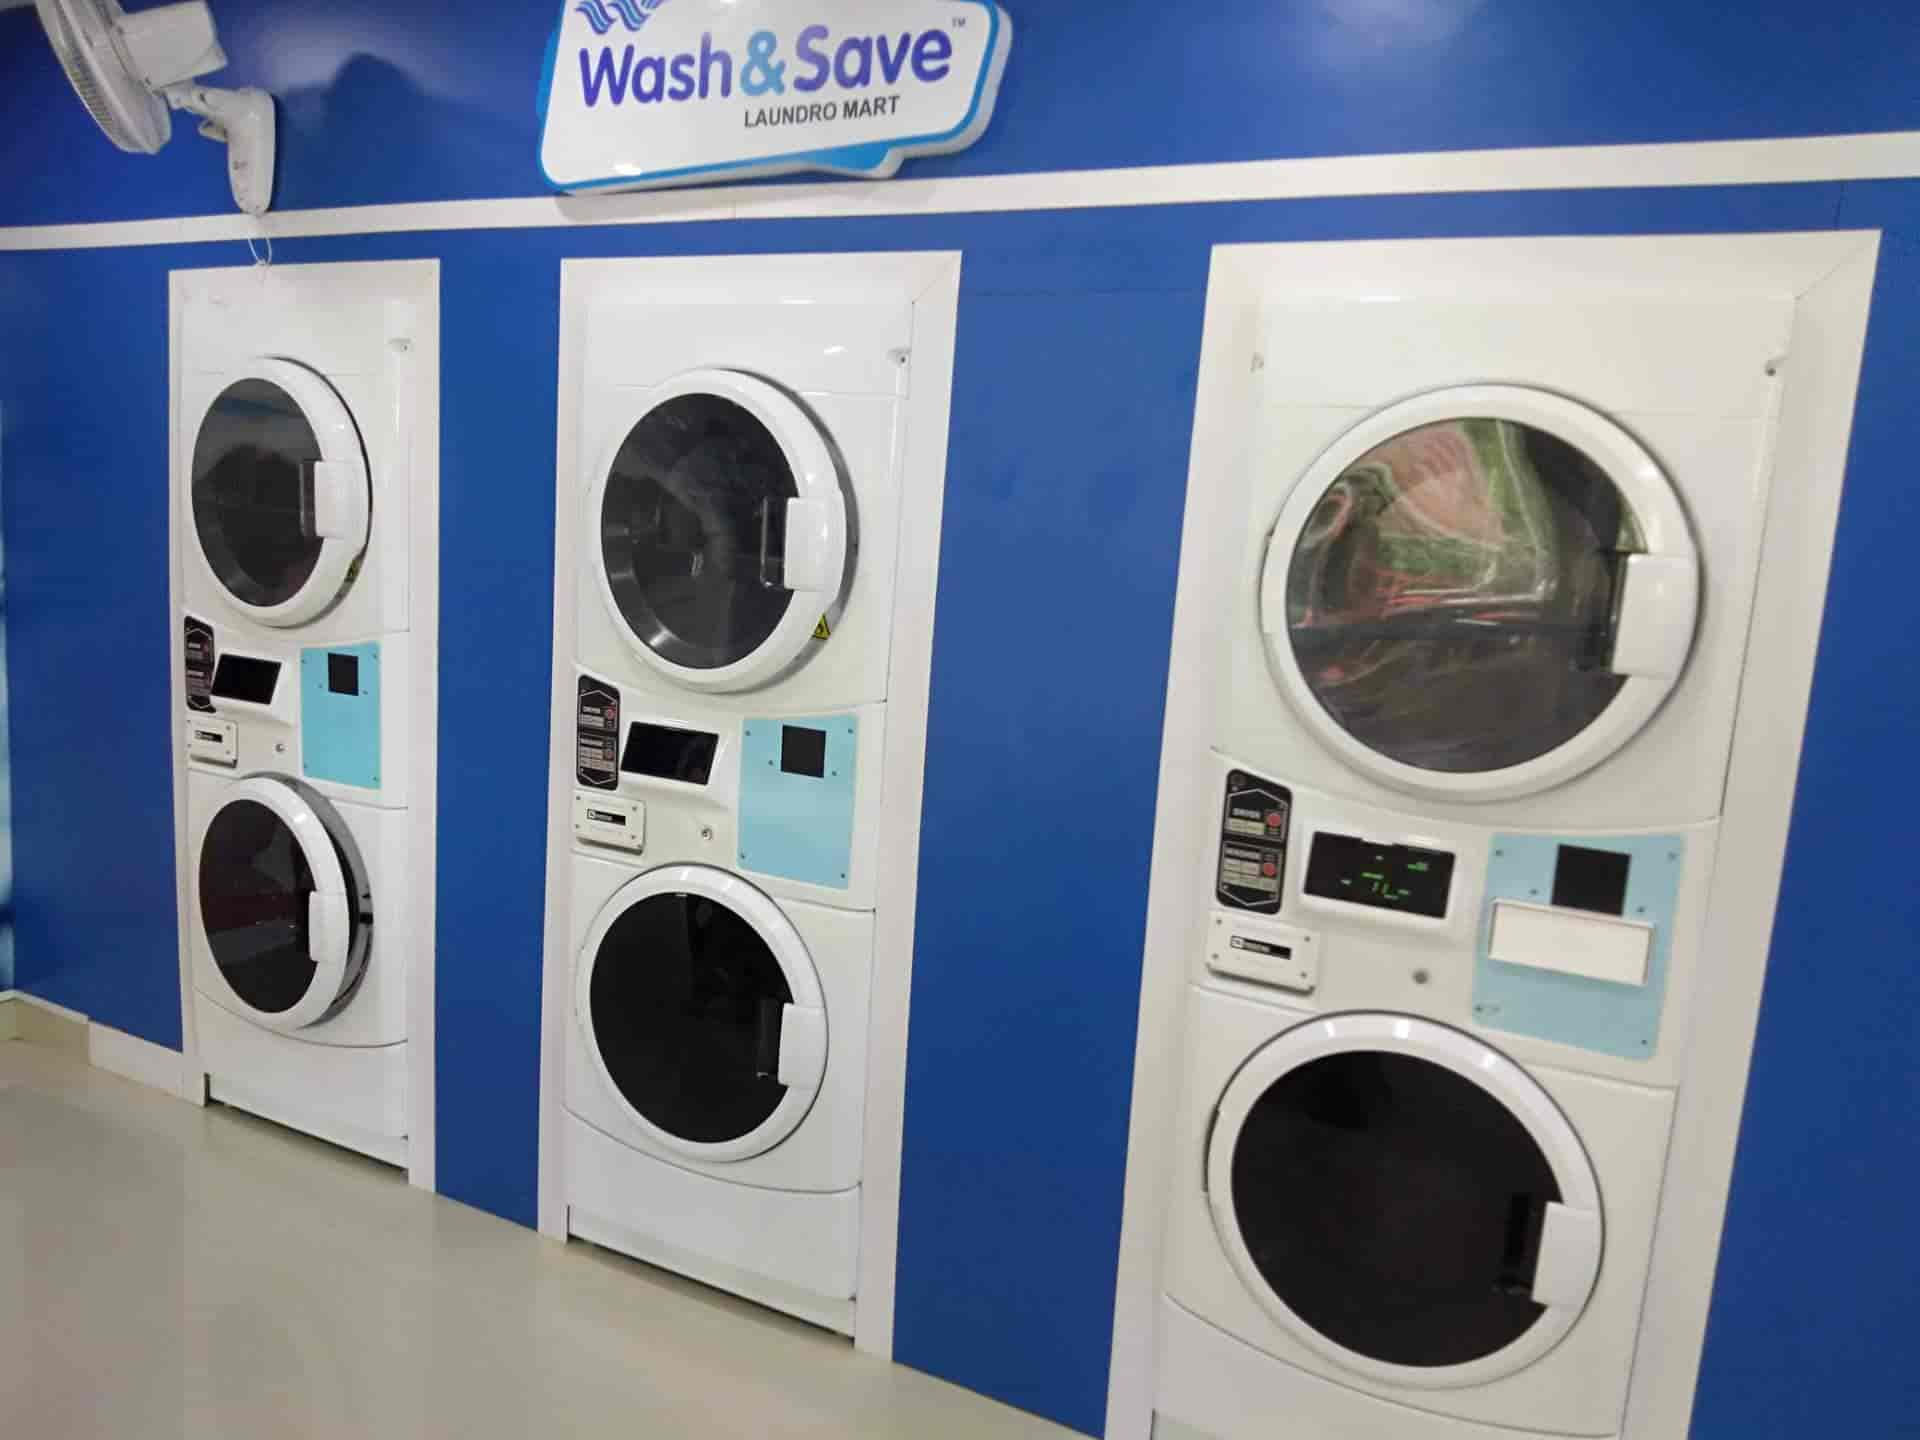 Wash and save laundry